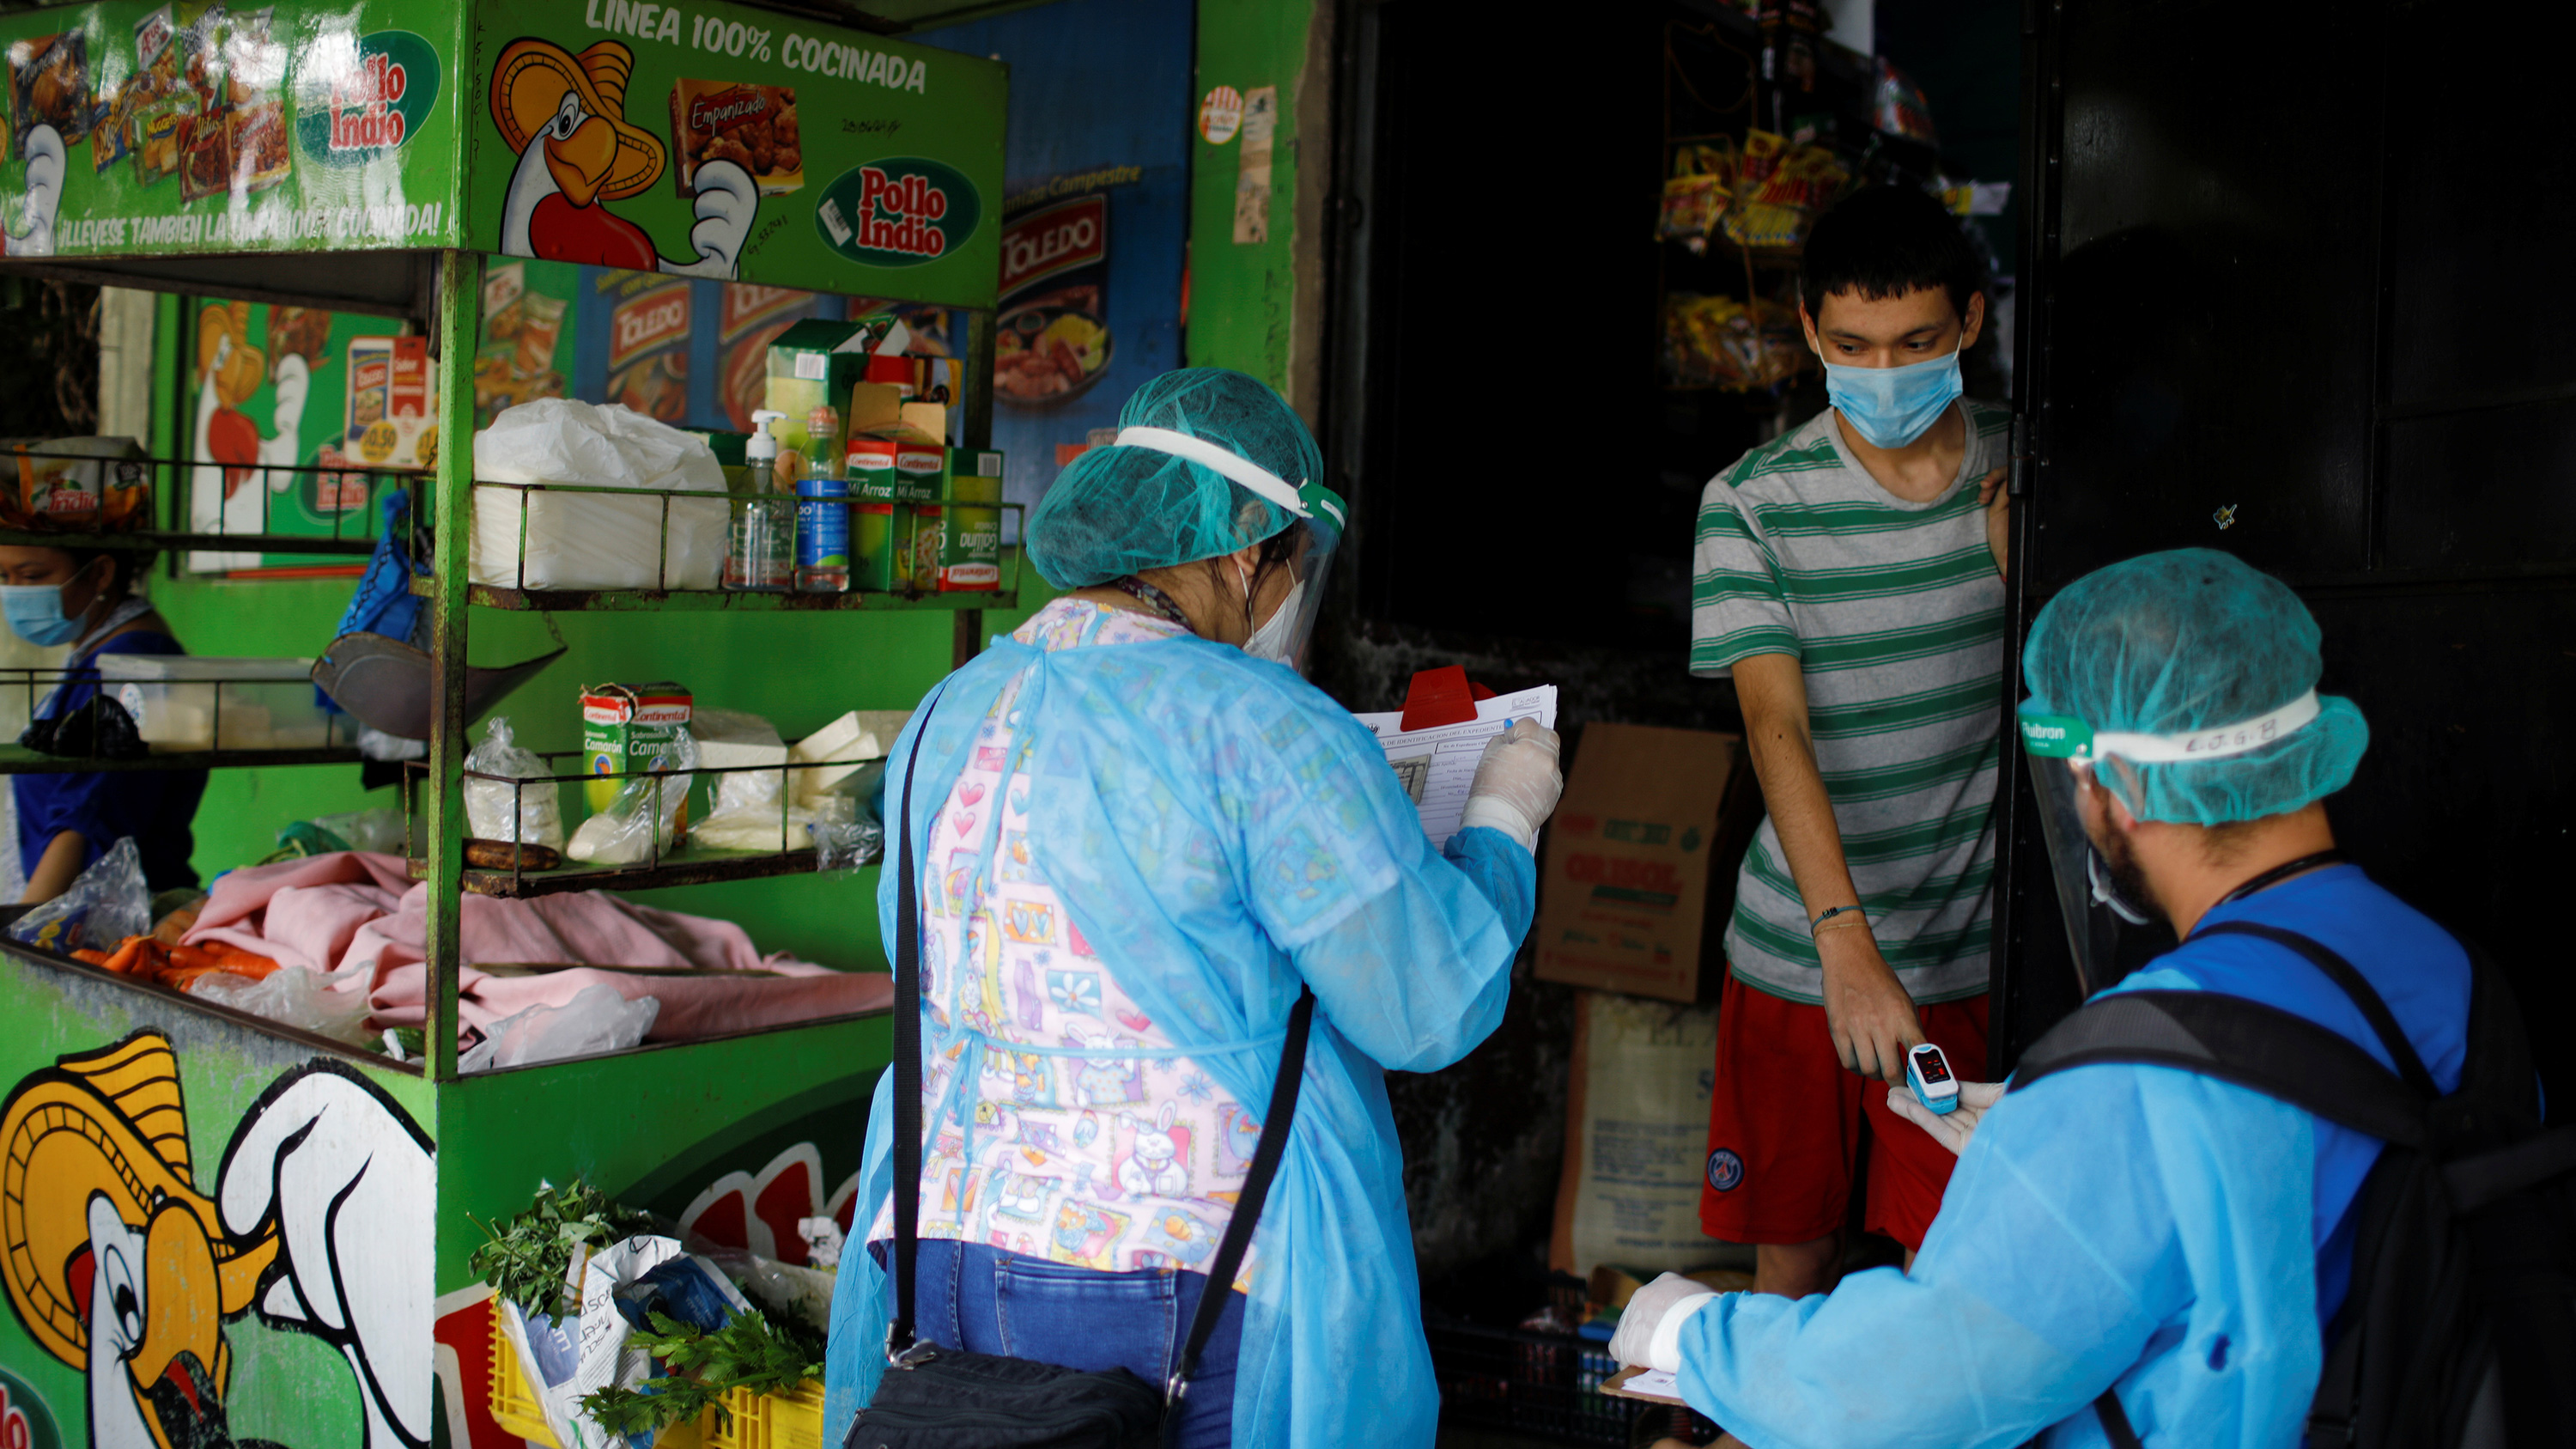 The photo shows two health workers interviewing a young person at the entrance of a small market.